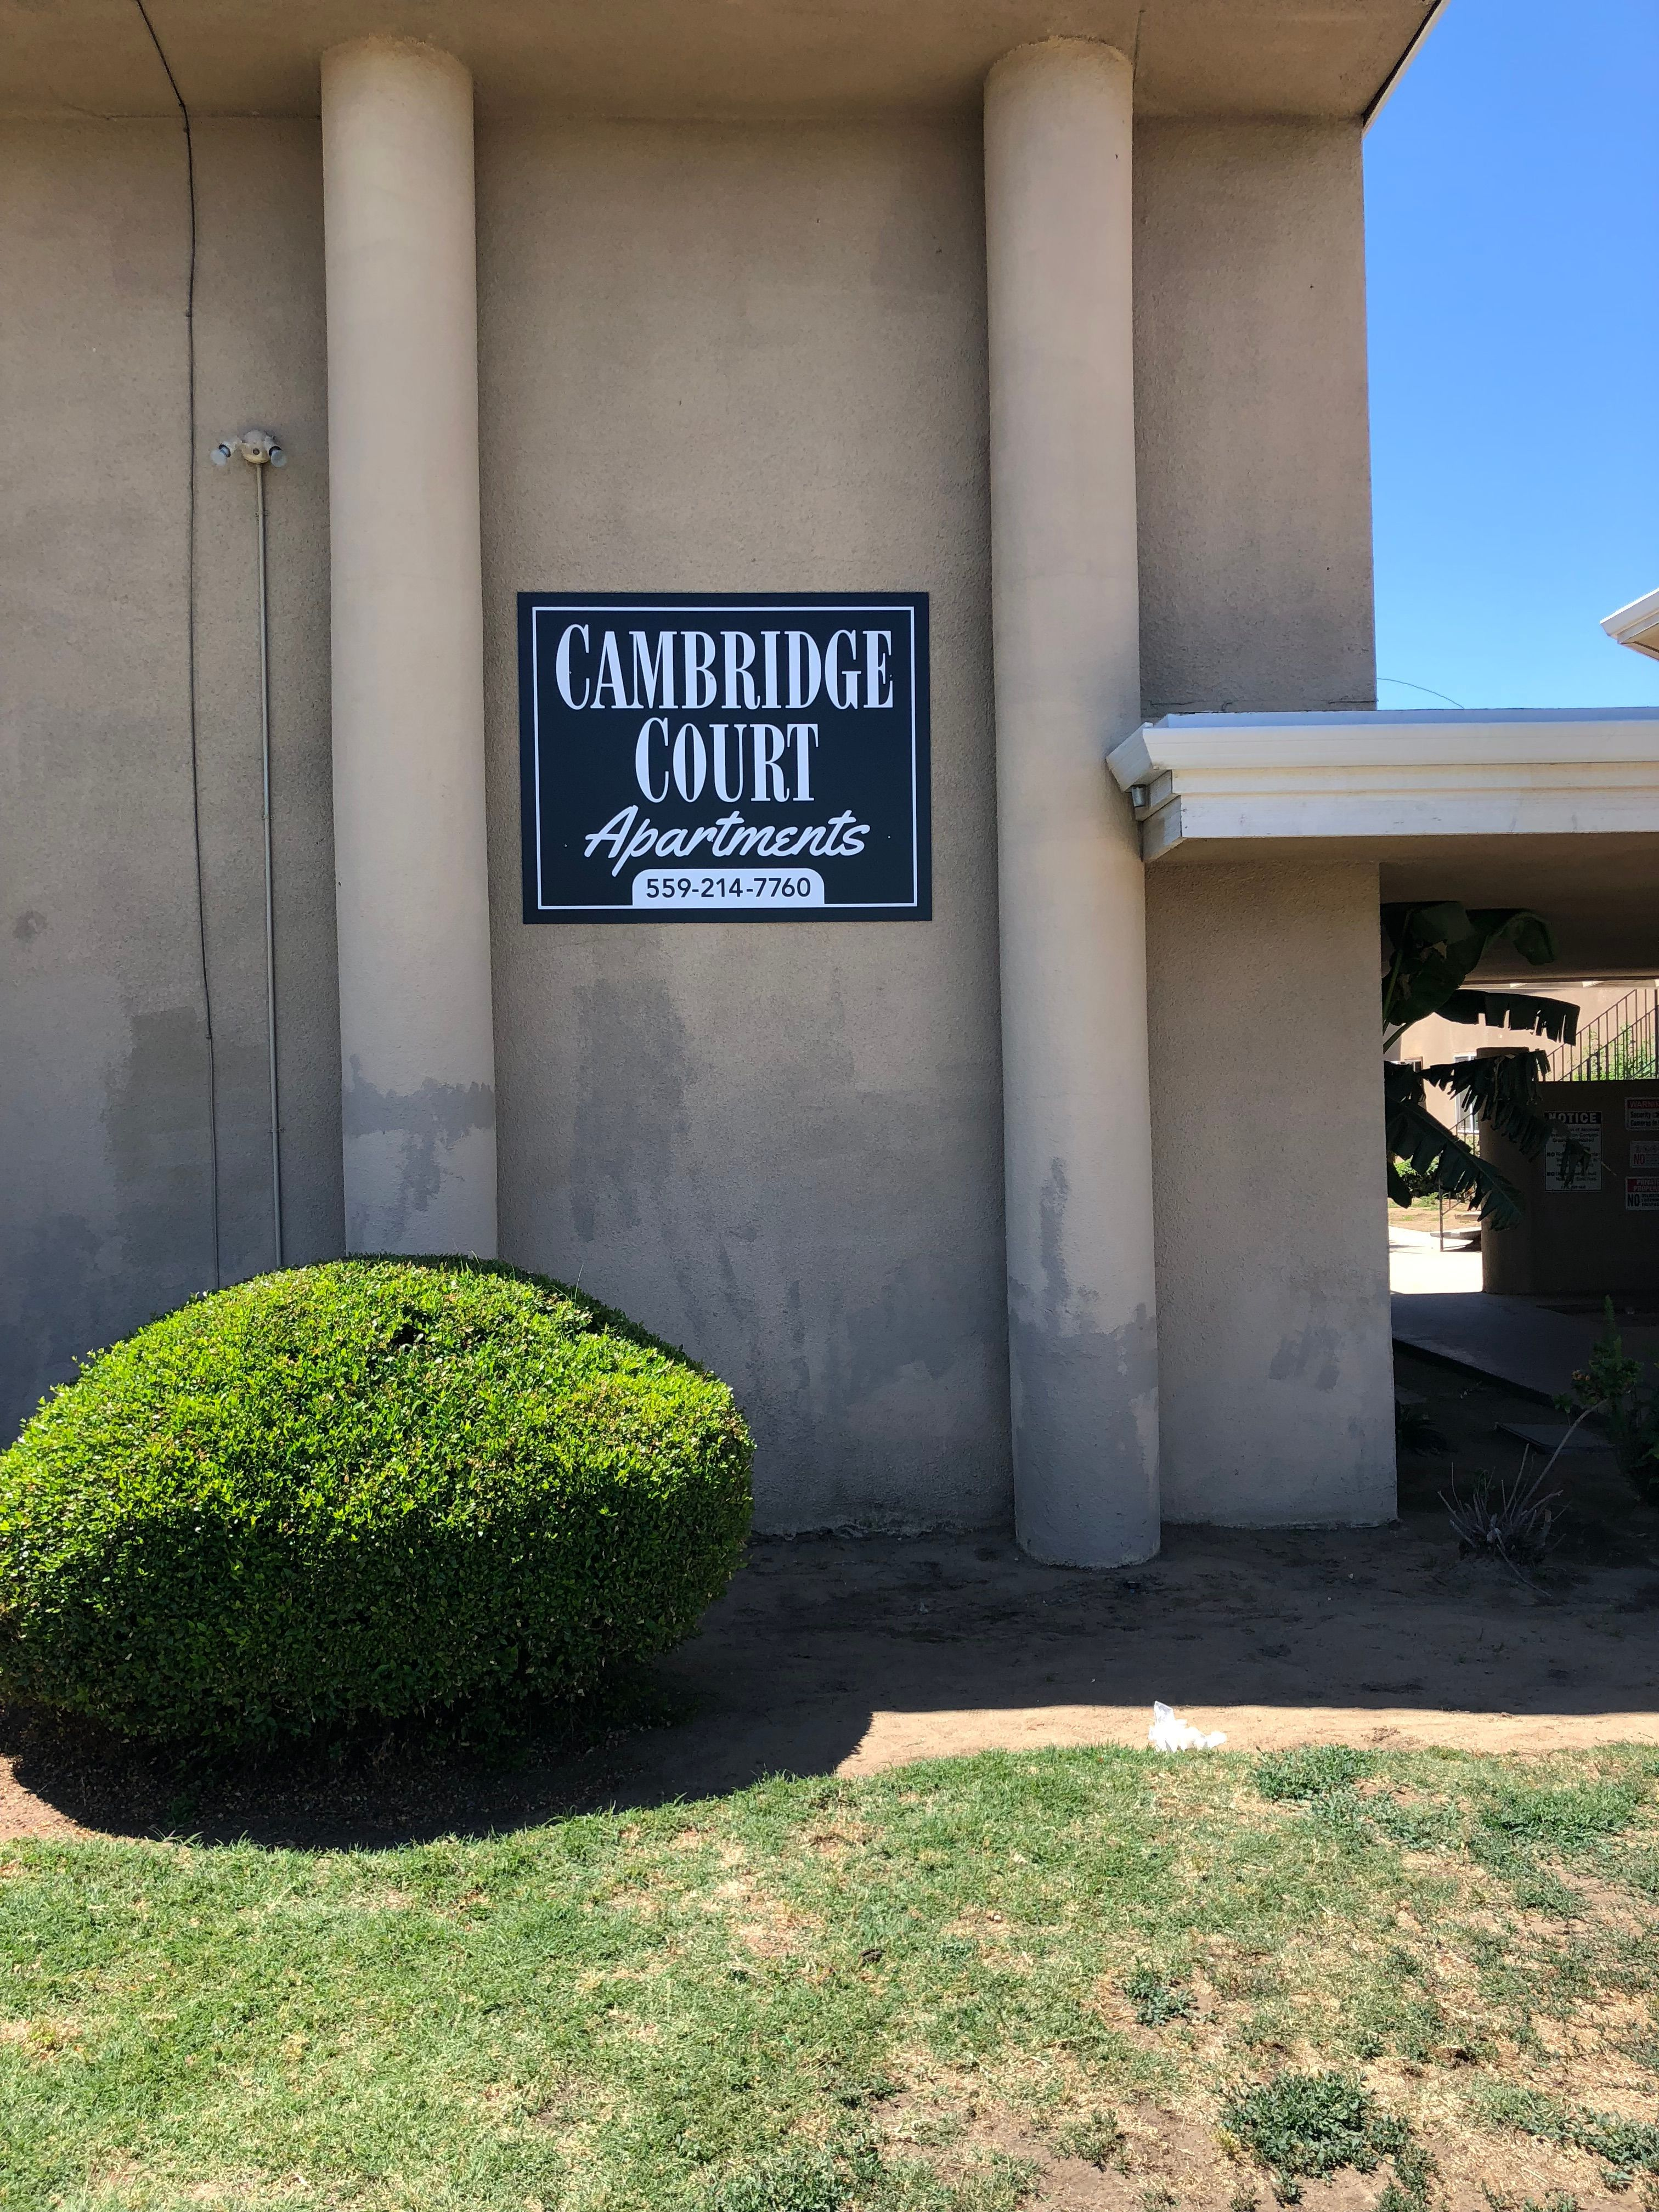 Cambridge Court Apts